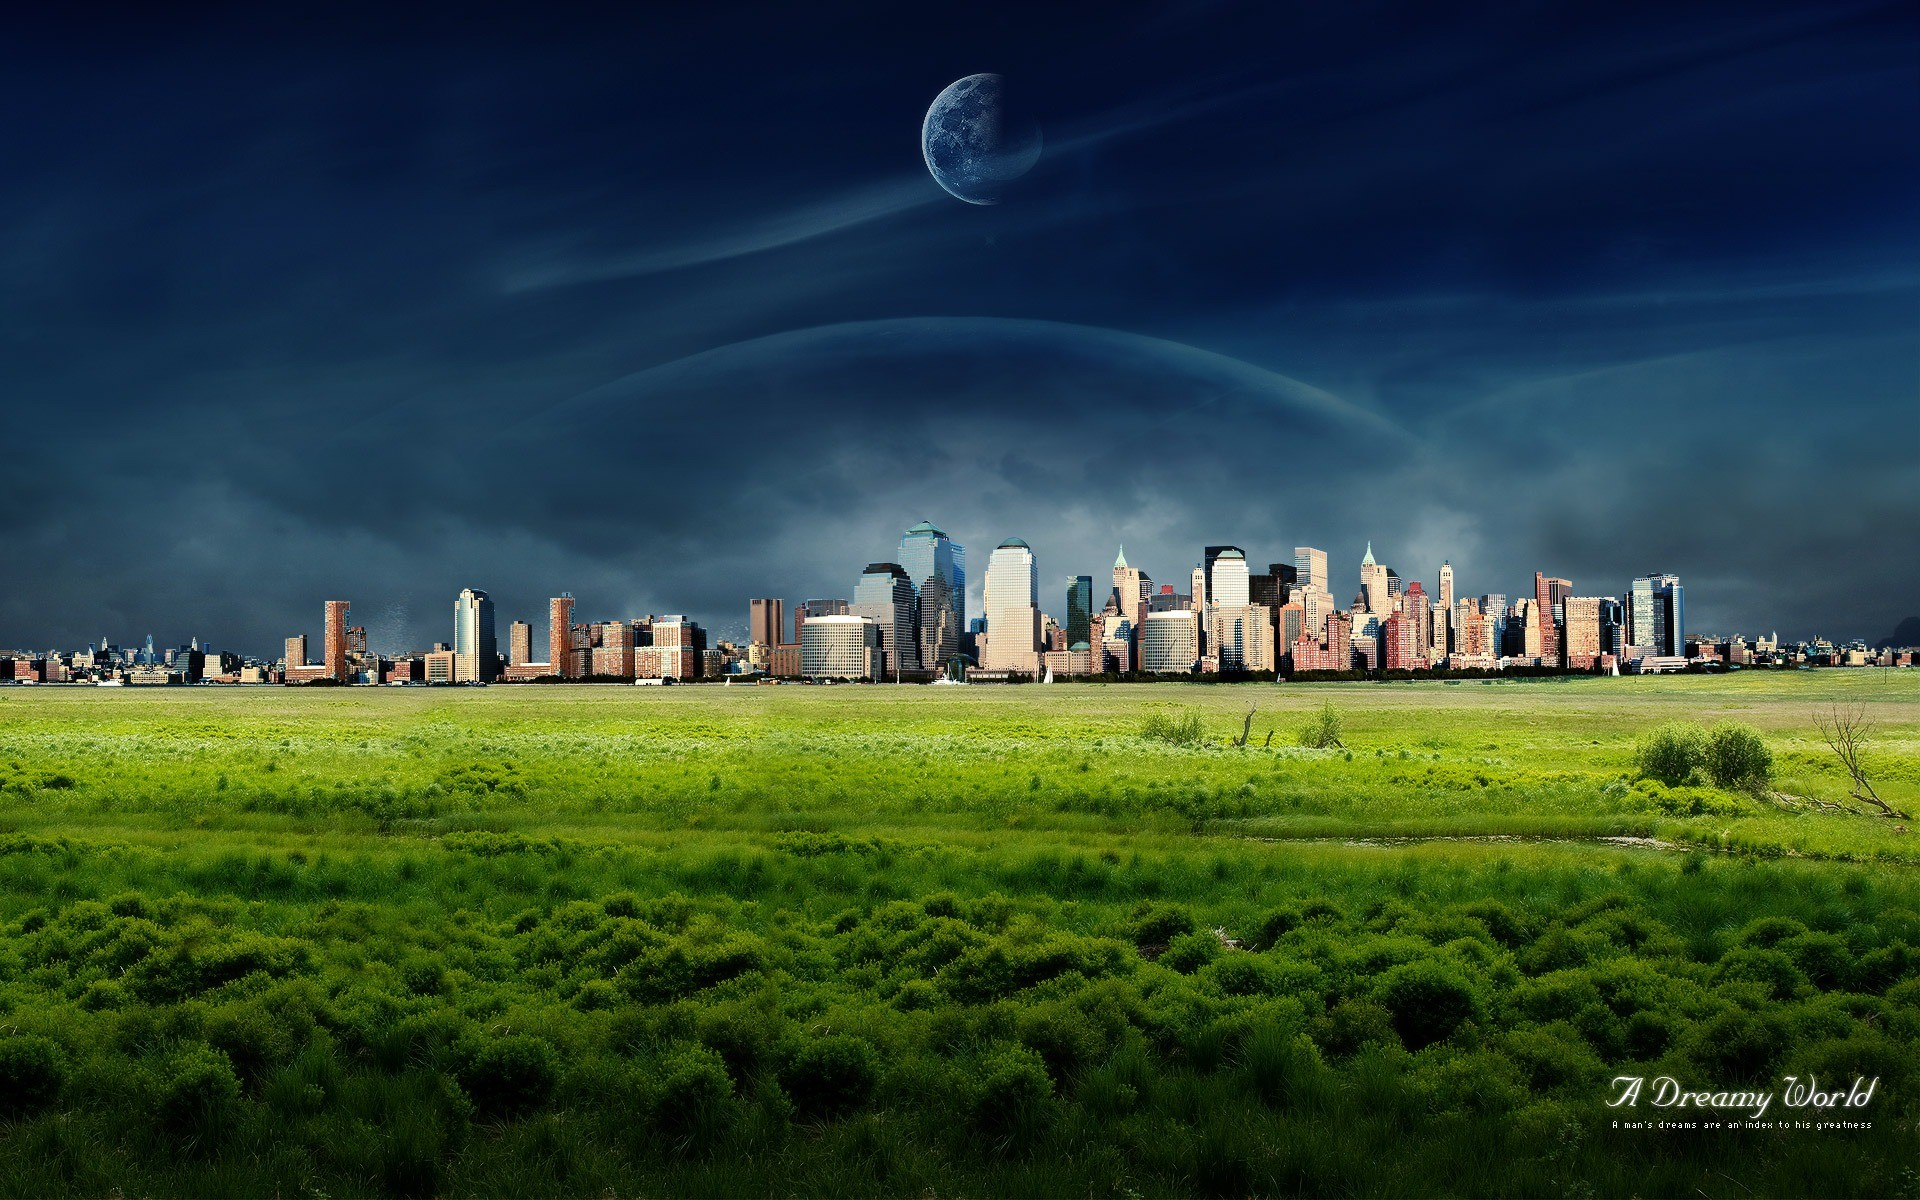 1920x1200 A Dreamy World 95th Wallpaper Photo Manipulated Nature Wallpapers